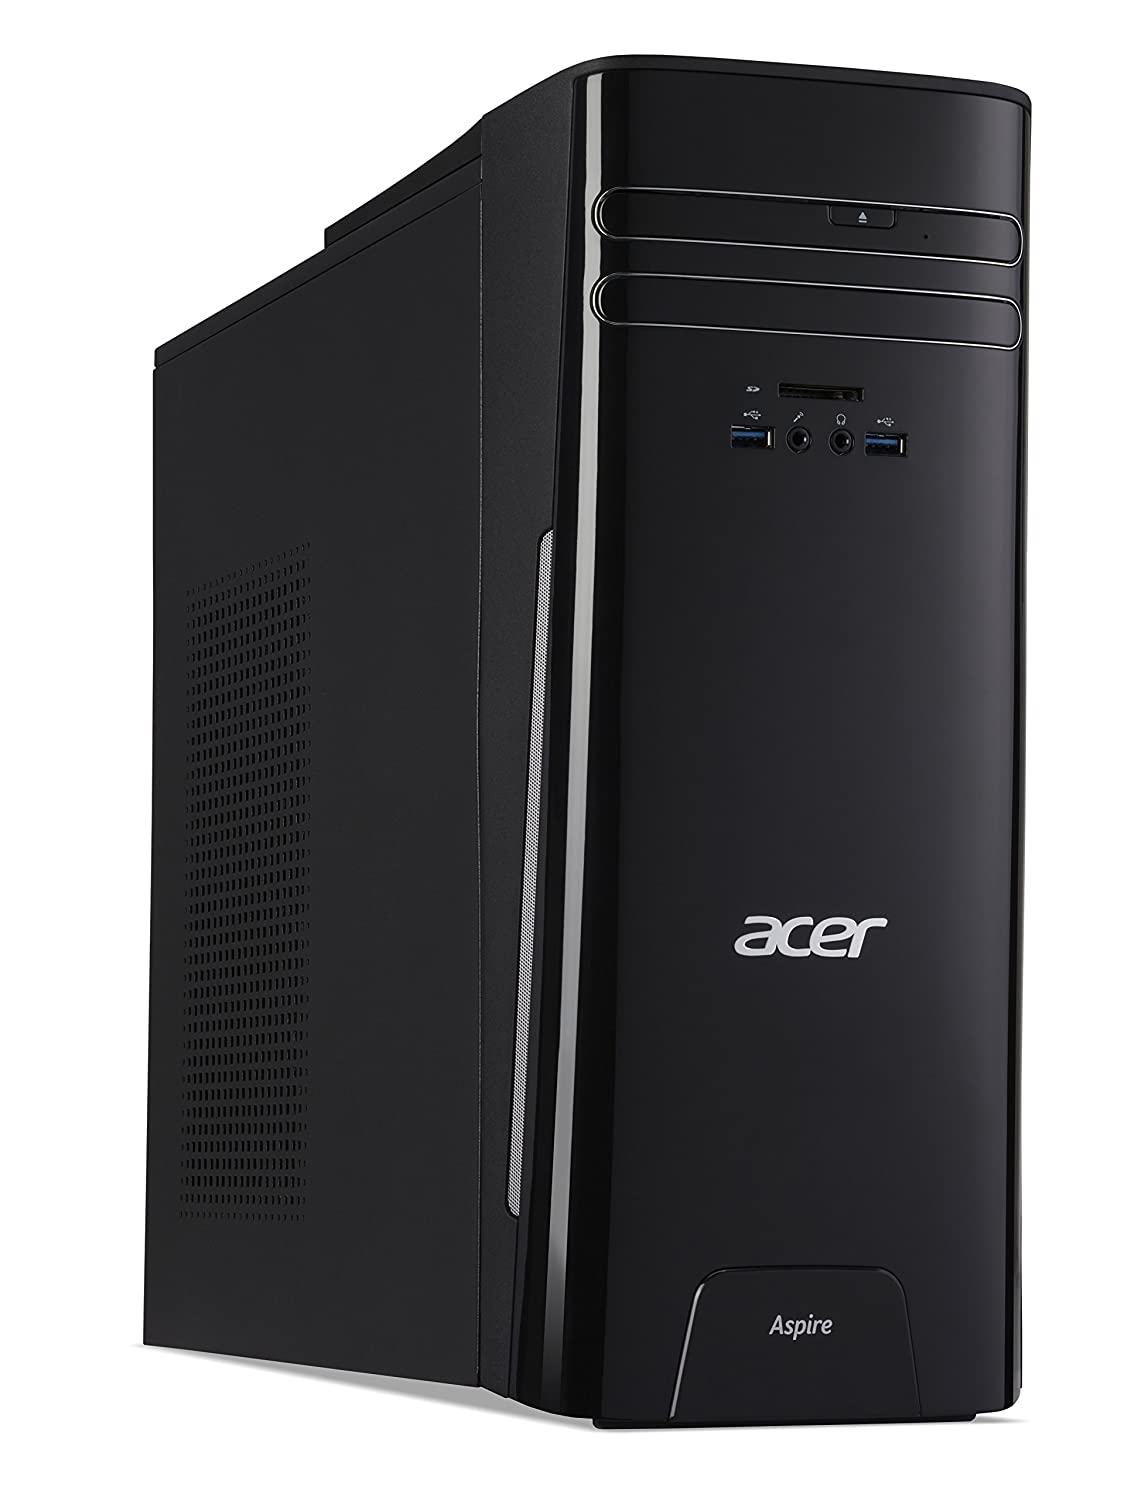 ACER ASPIRE X3990 REALTEK AUDIO WINDOWS 8 DRIVERS DOWNLOAD